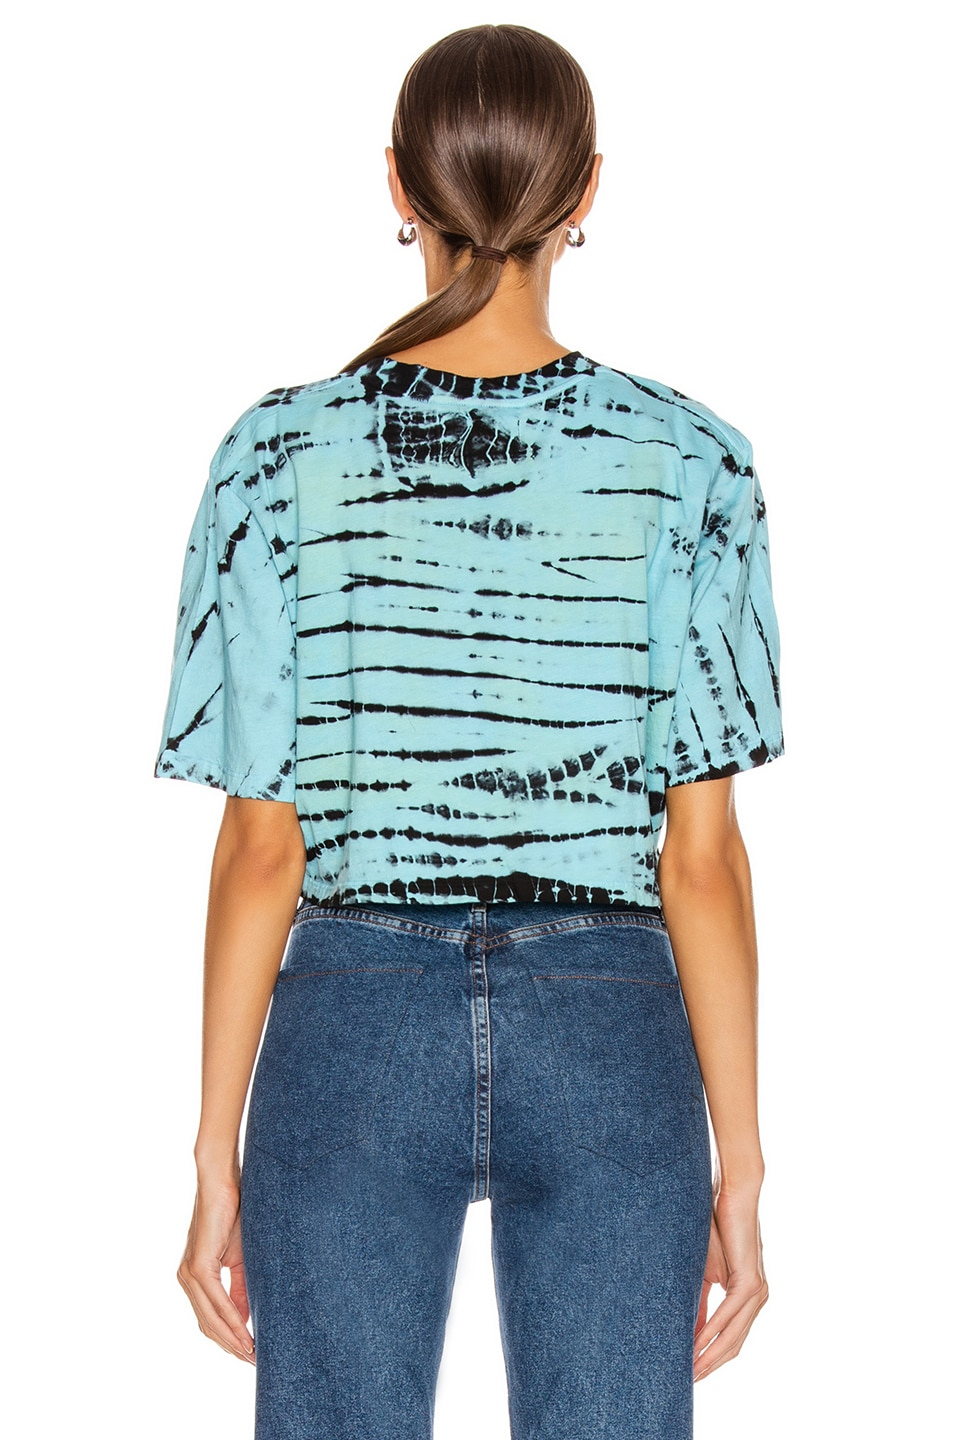 Image 3 of Frankie B Naomi Cropped Short Sleeve Tee in Turquoise & Black Tie Dye